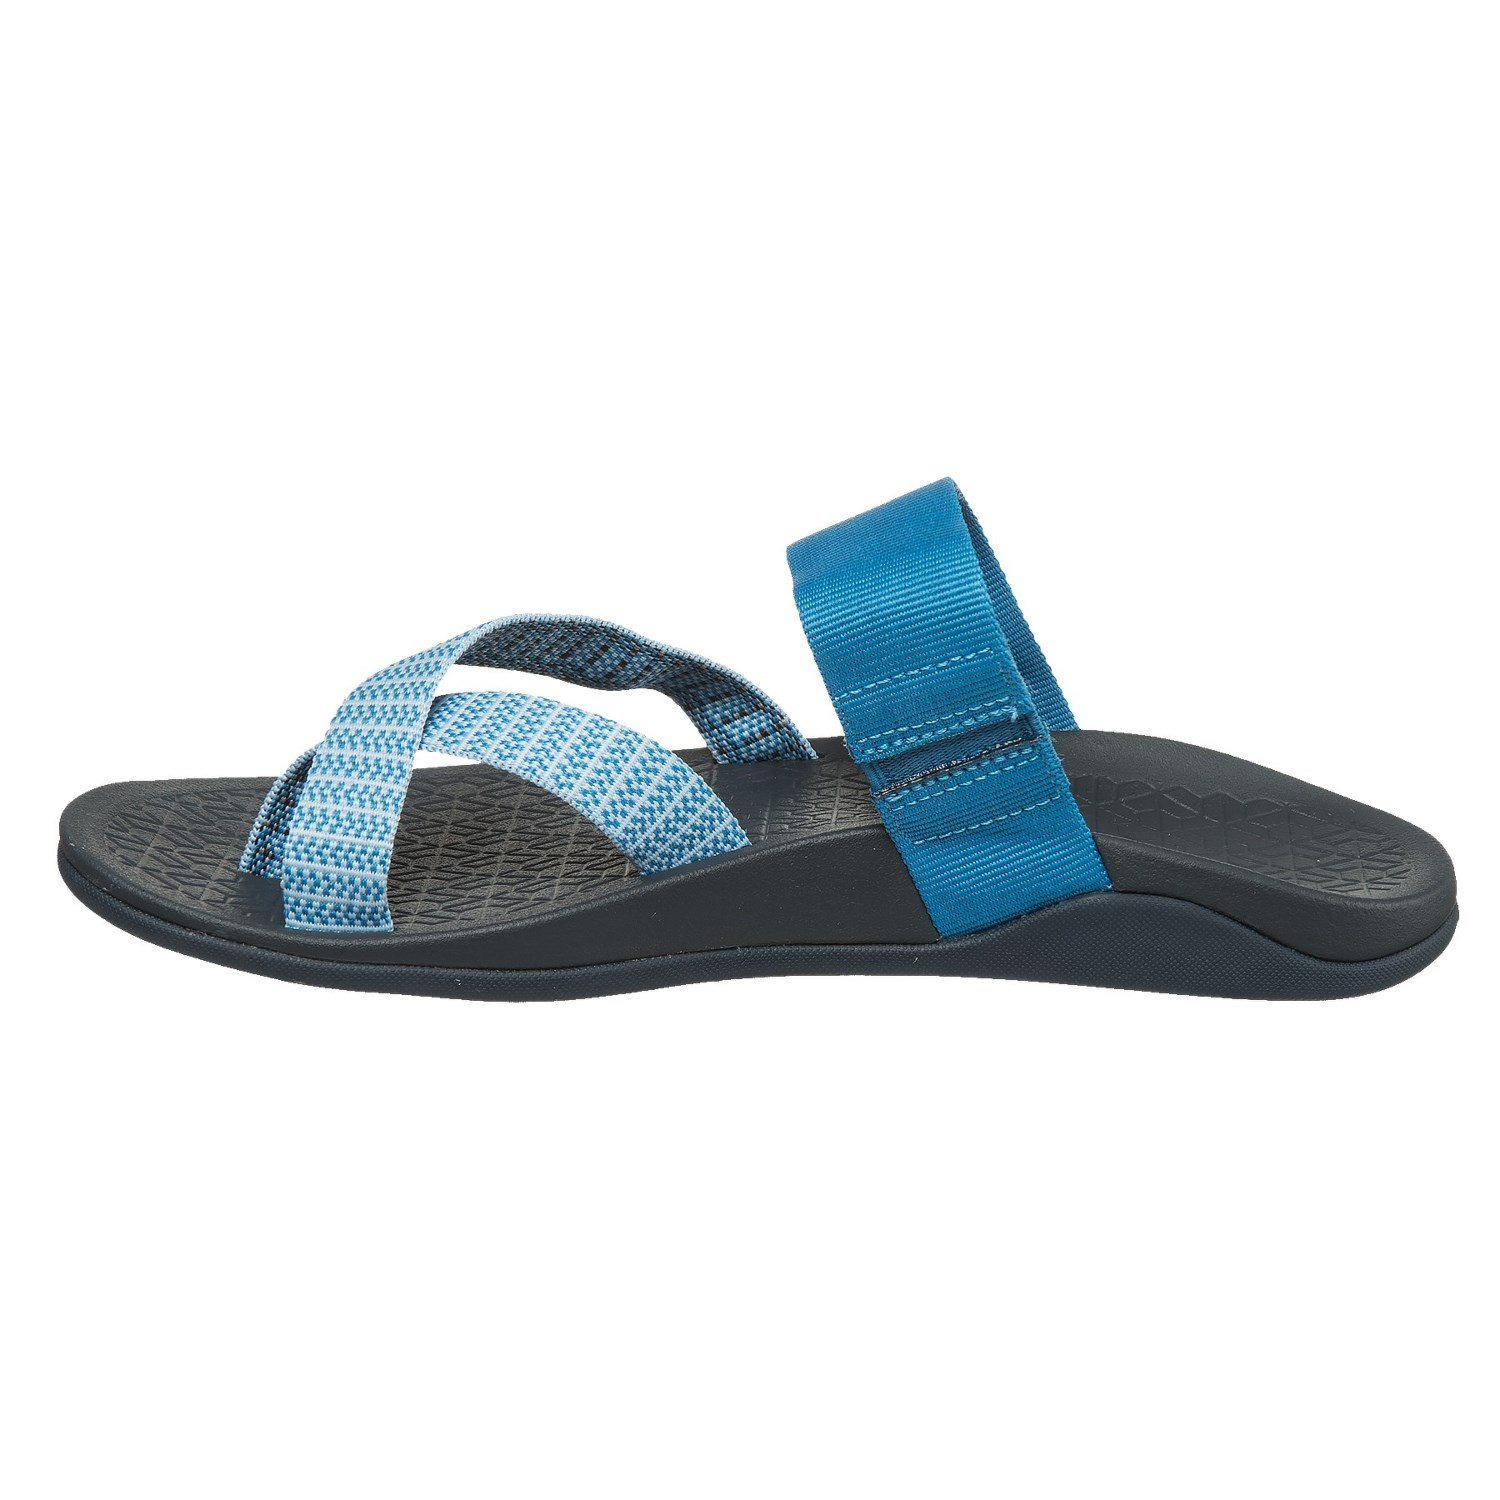 a6522702fb3 Chaco Tetra Cloud Sandals (For Women) - Save 37%